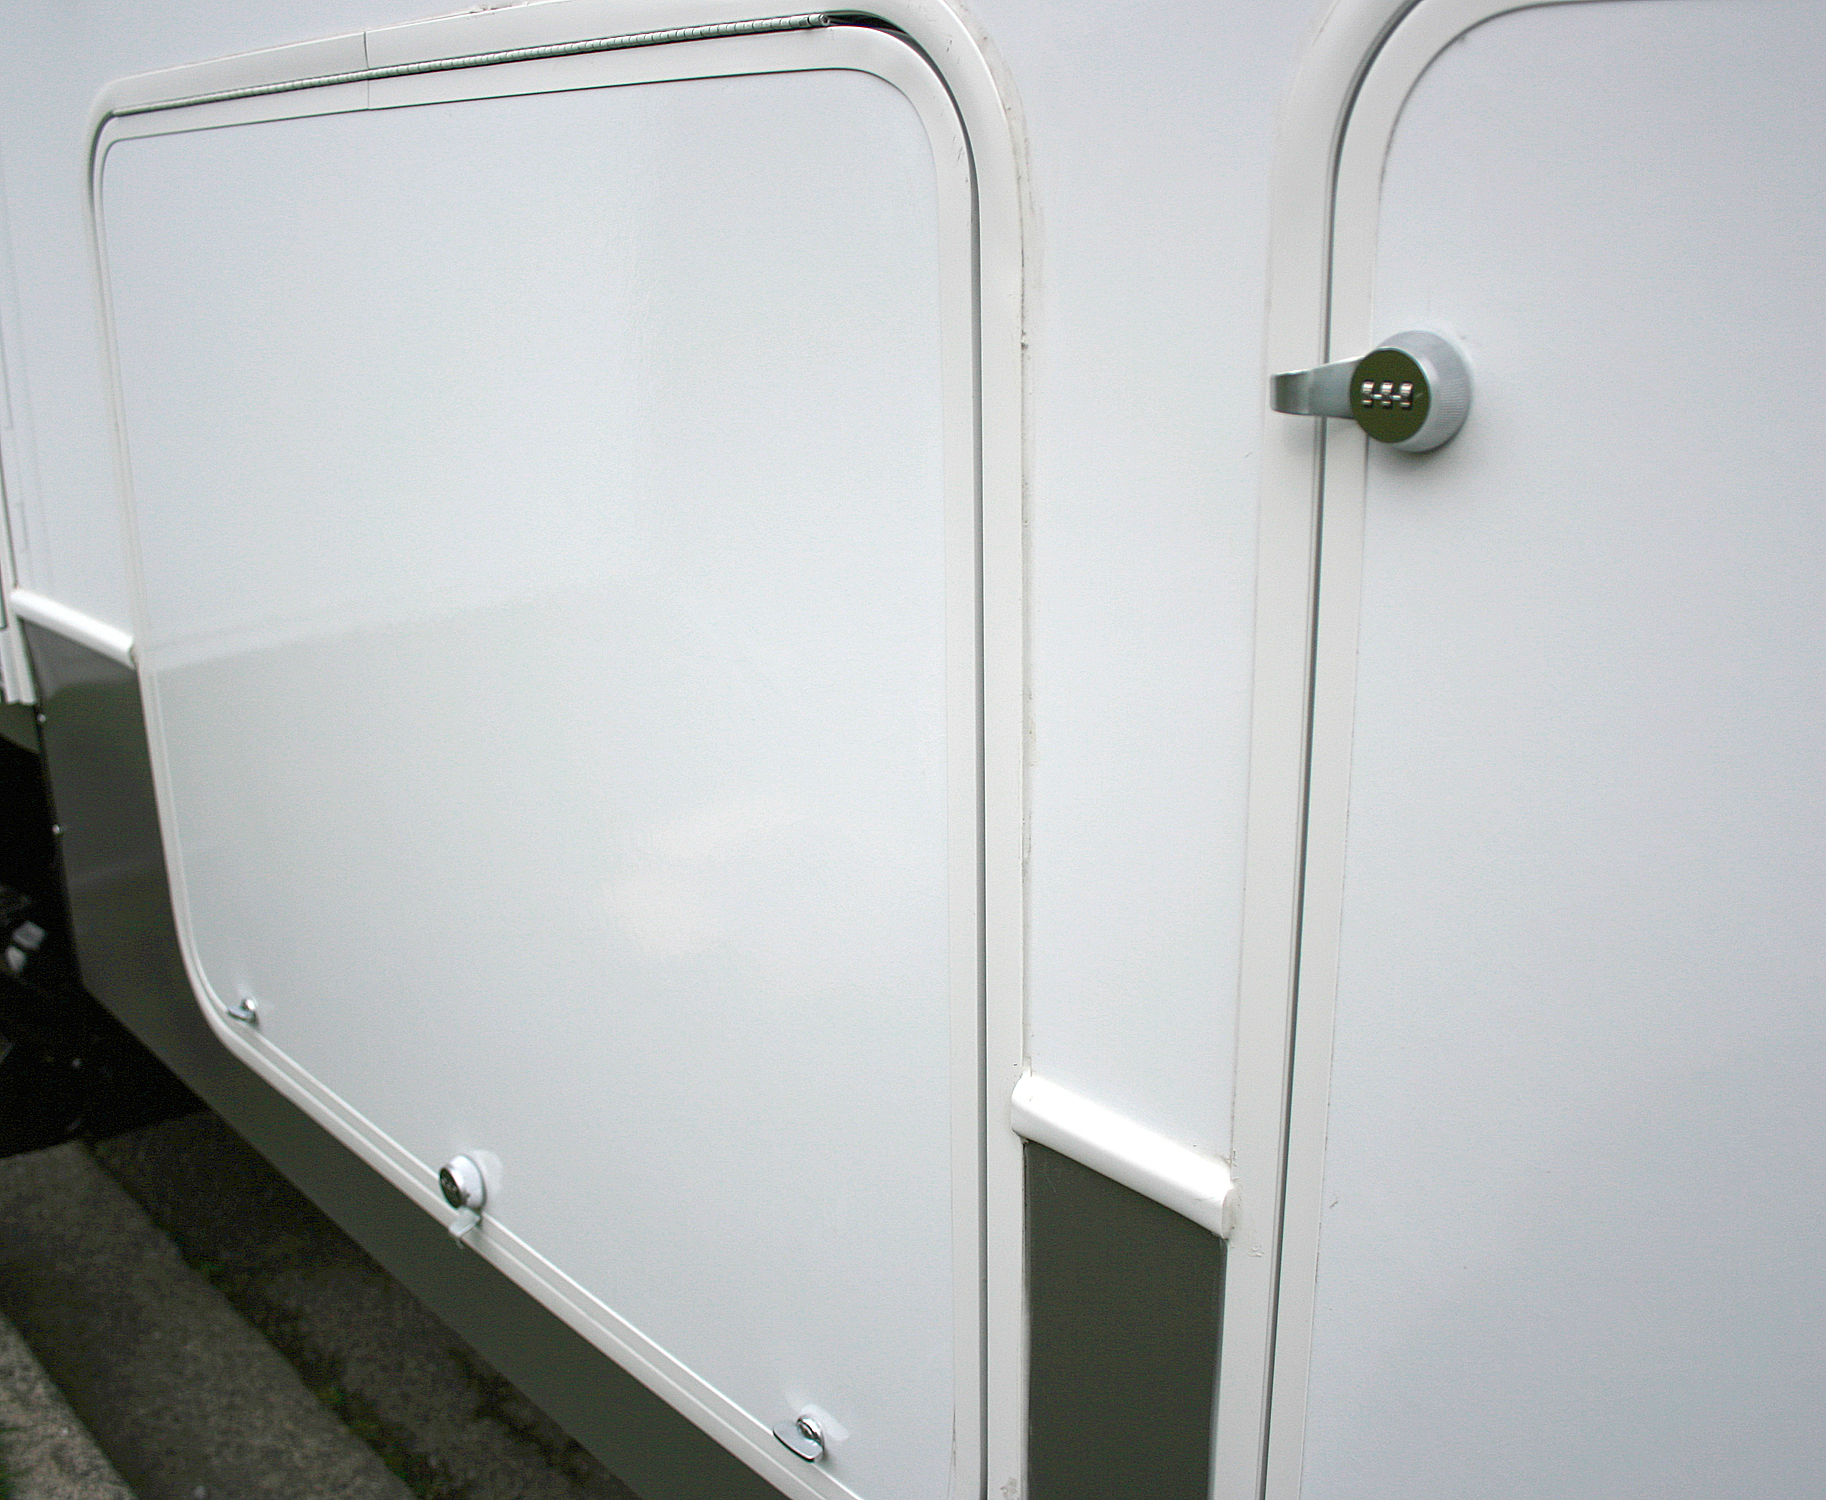 Compartment Door Rv Compartment Door Without Latch And